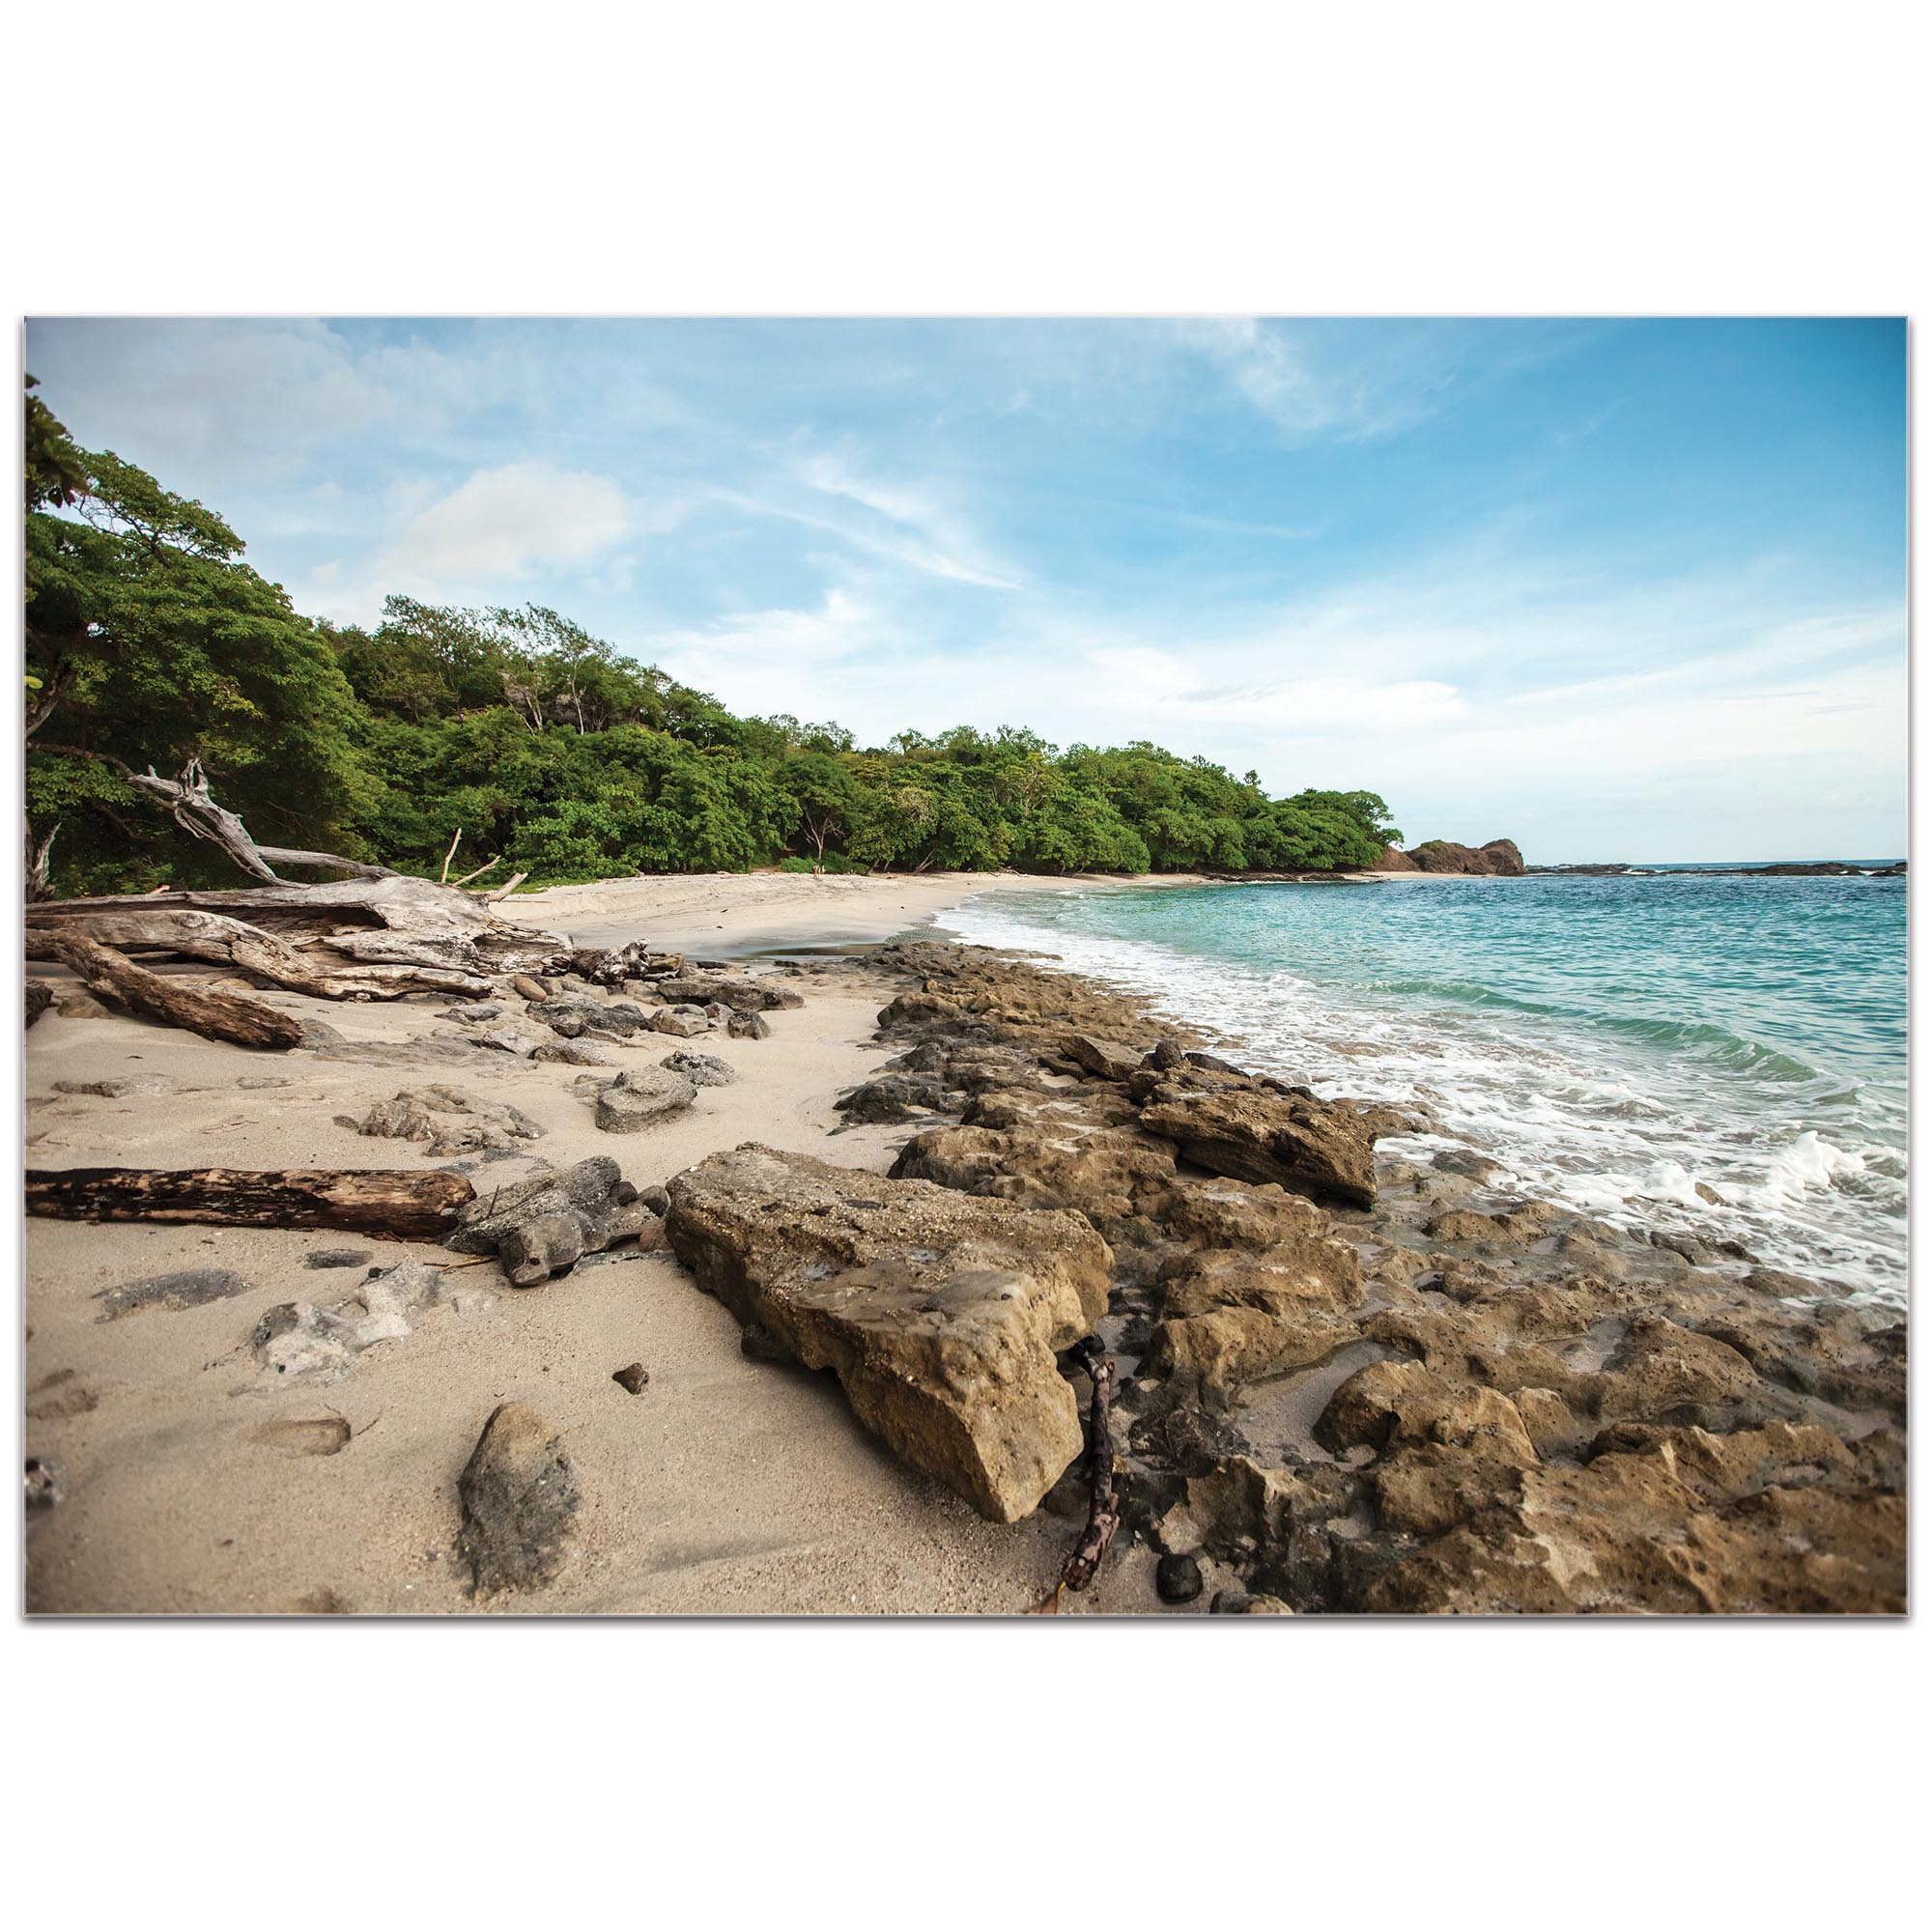 Coastal Wall Art 'Tropical Jungle' - Beach Decor on Metal or Plexiglass - Image 2